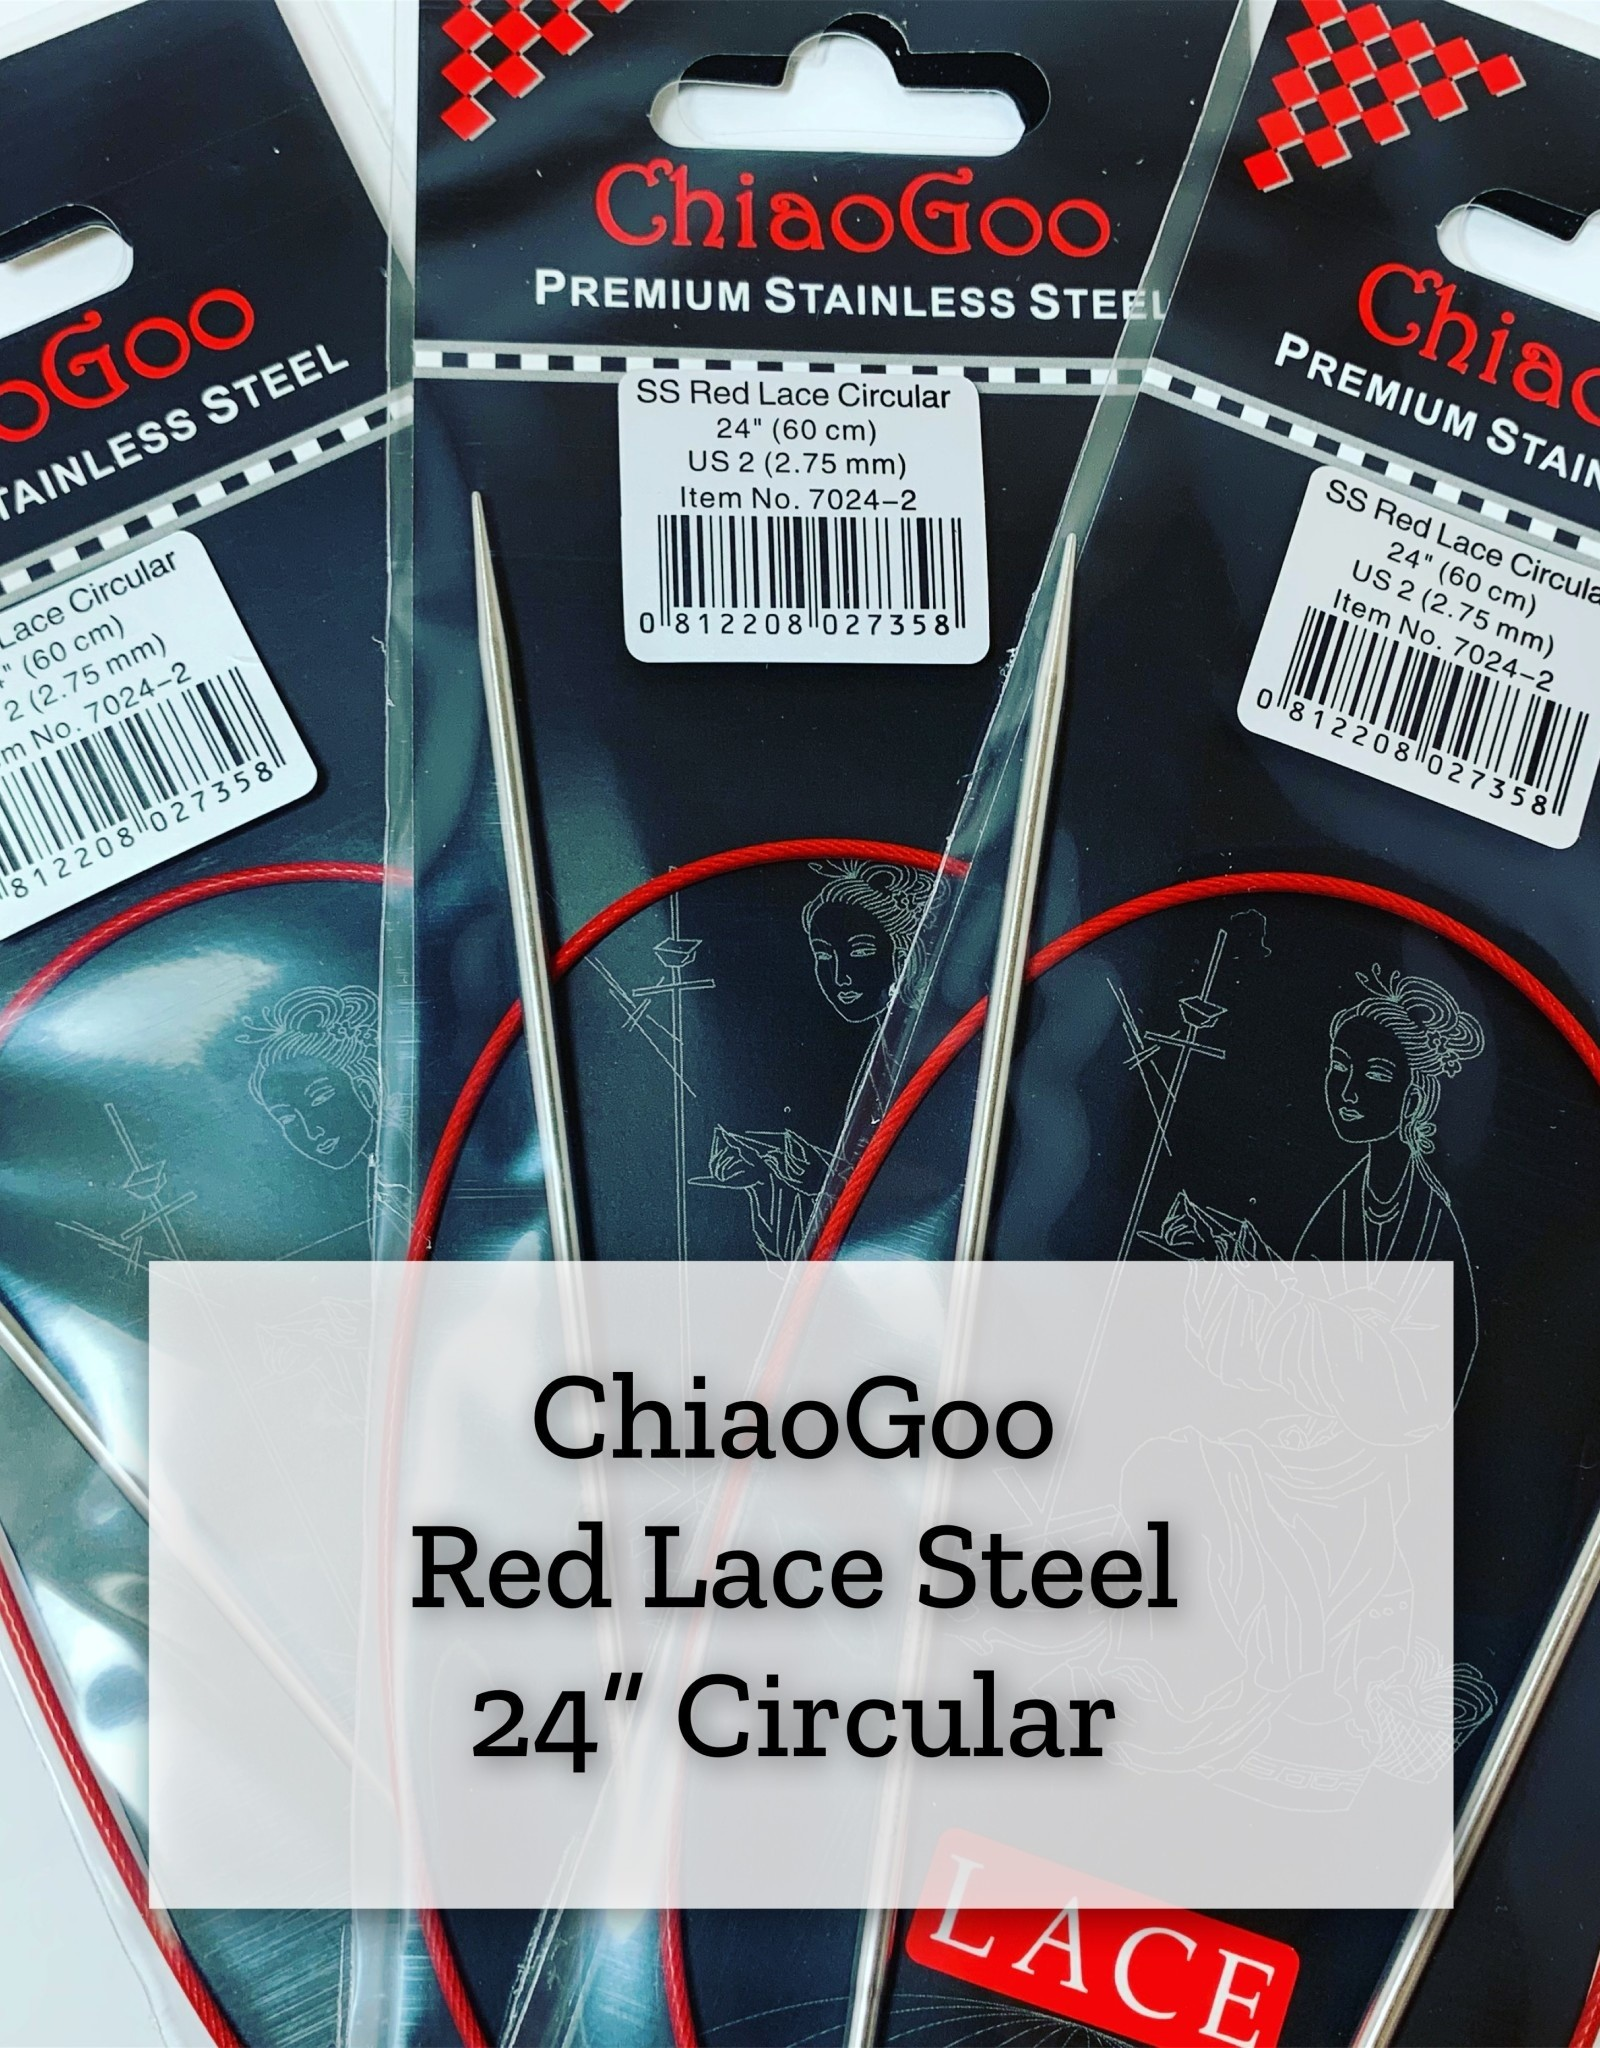 "ChiaoGoo Red Lace Steel - 24"" 2.5 mm"